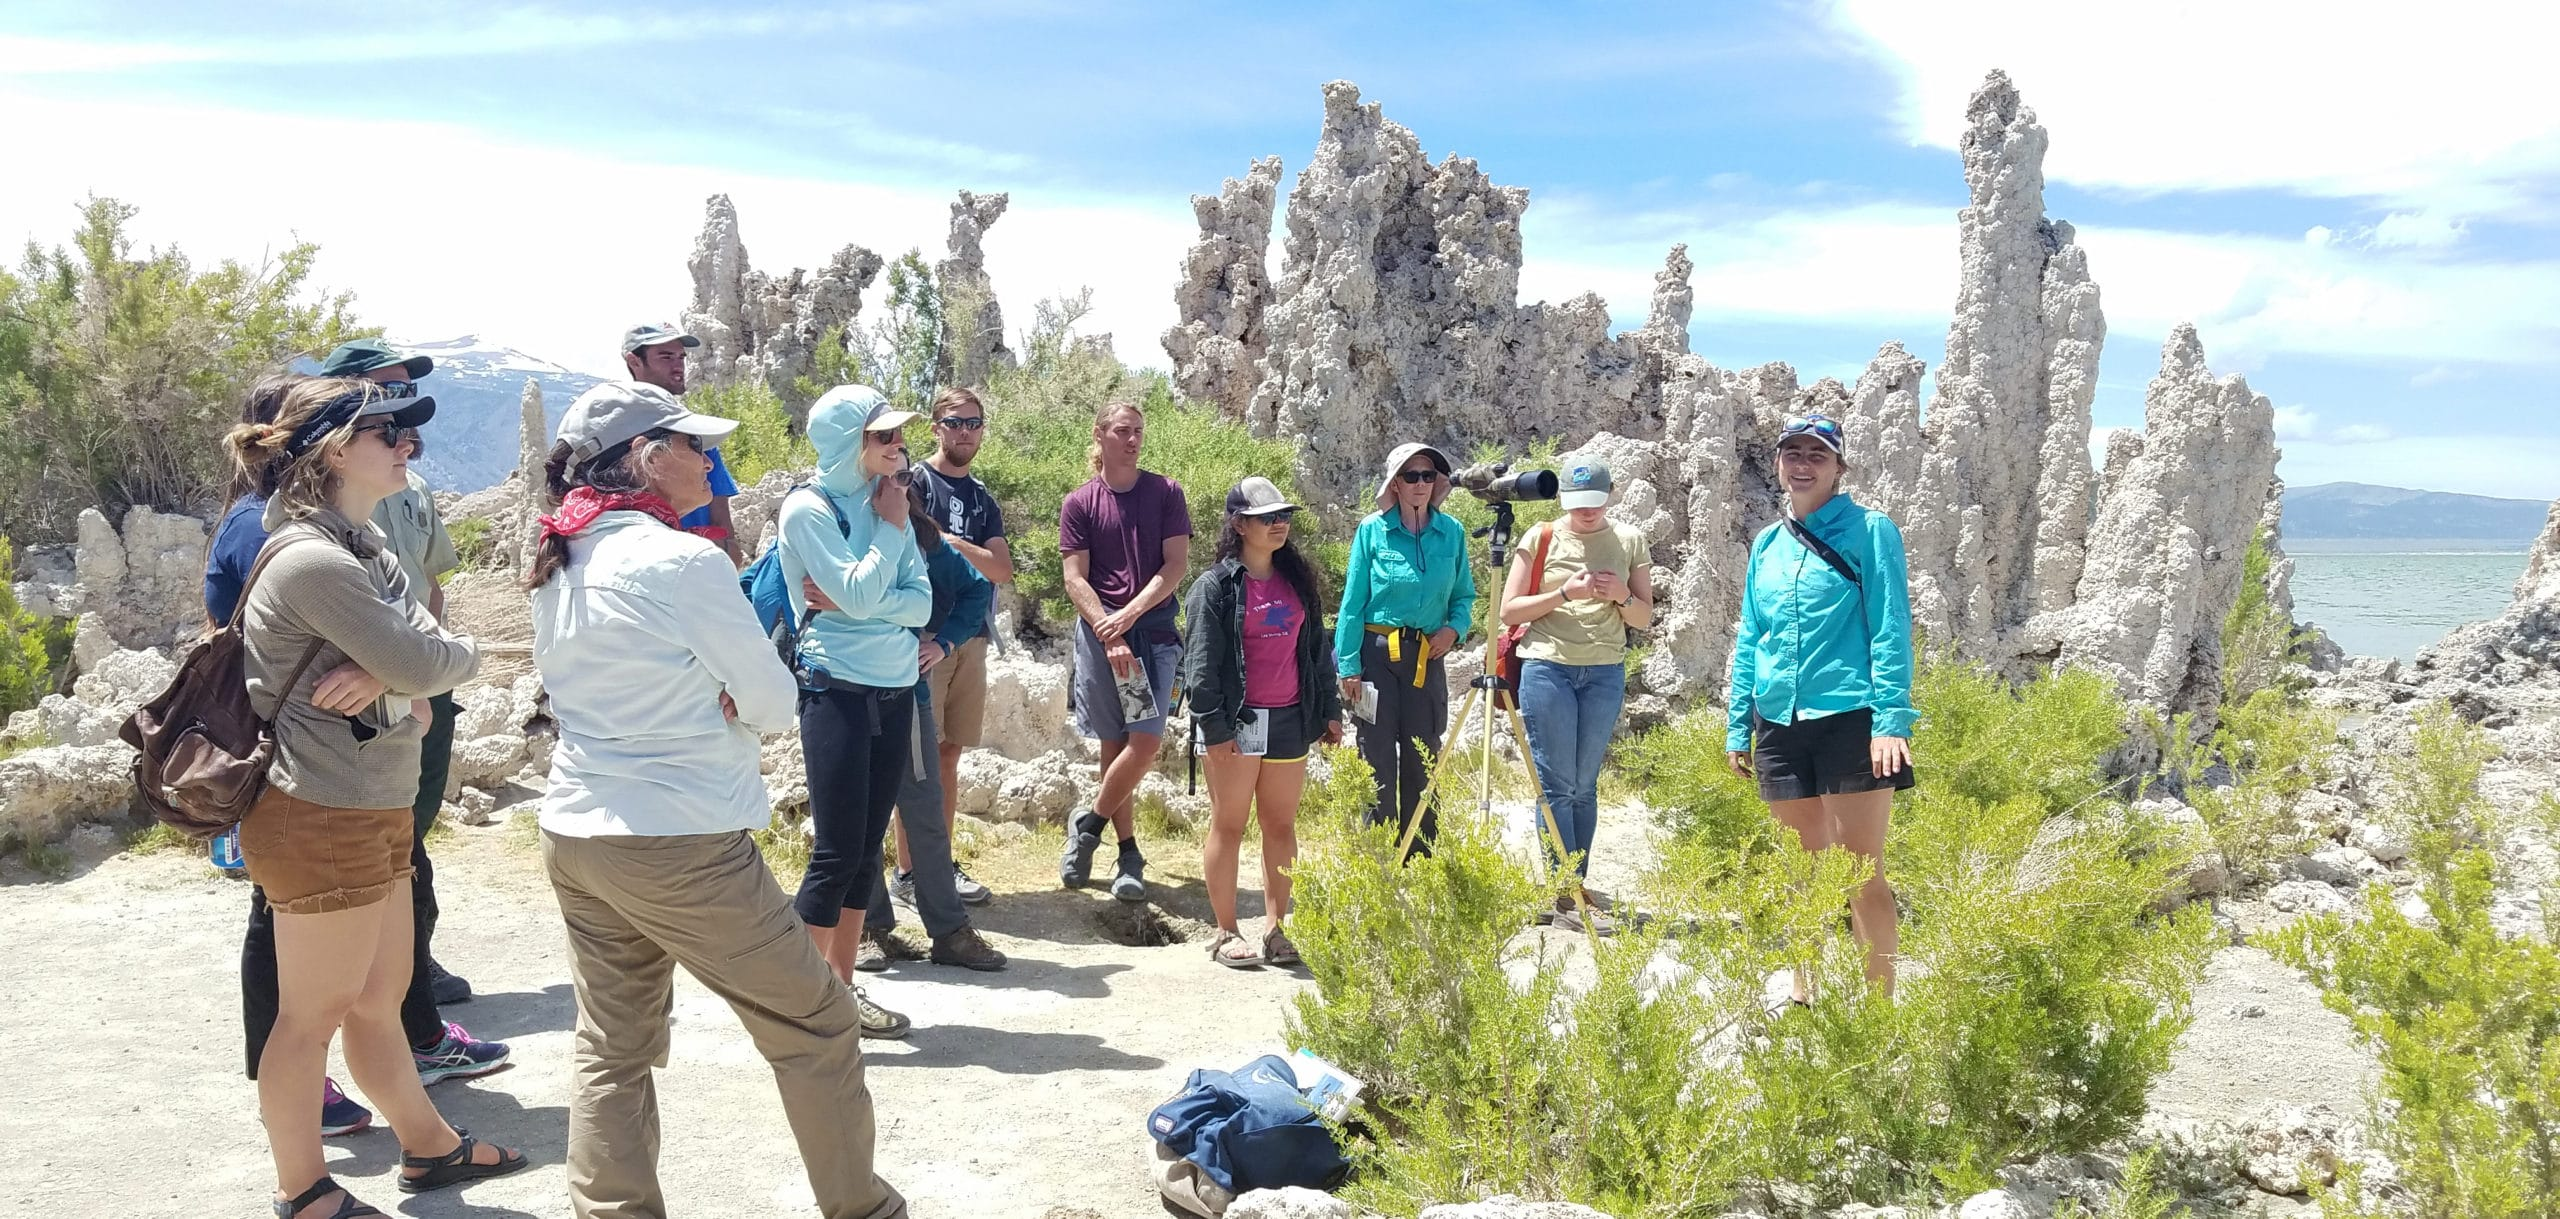 Twelve people are standing in a grove of an unusual landscape with tufa towers behind them and they are listening intently to a guide and it is a bright sunny day.